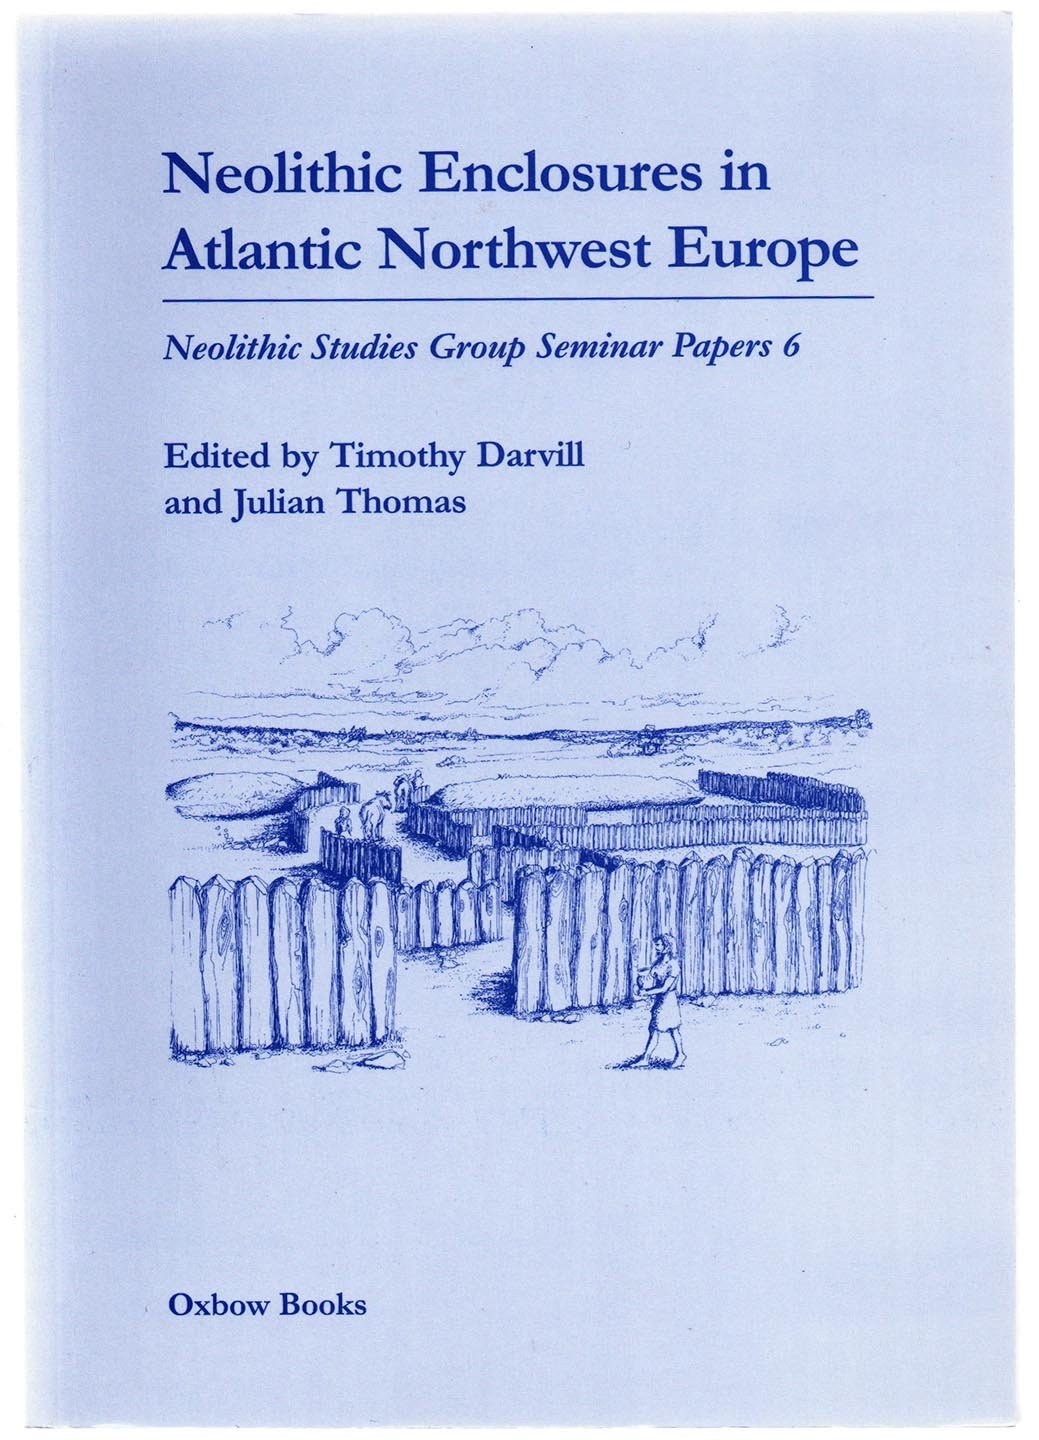 Neolithic Enclosures in Atlantic Northwest Europe